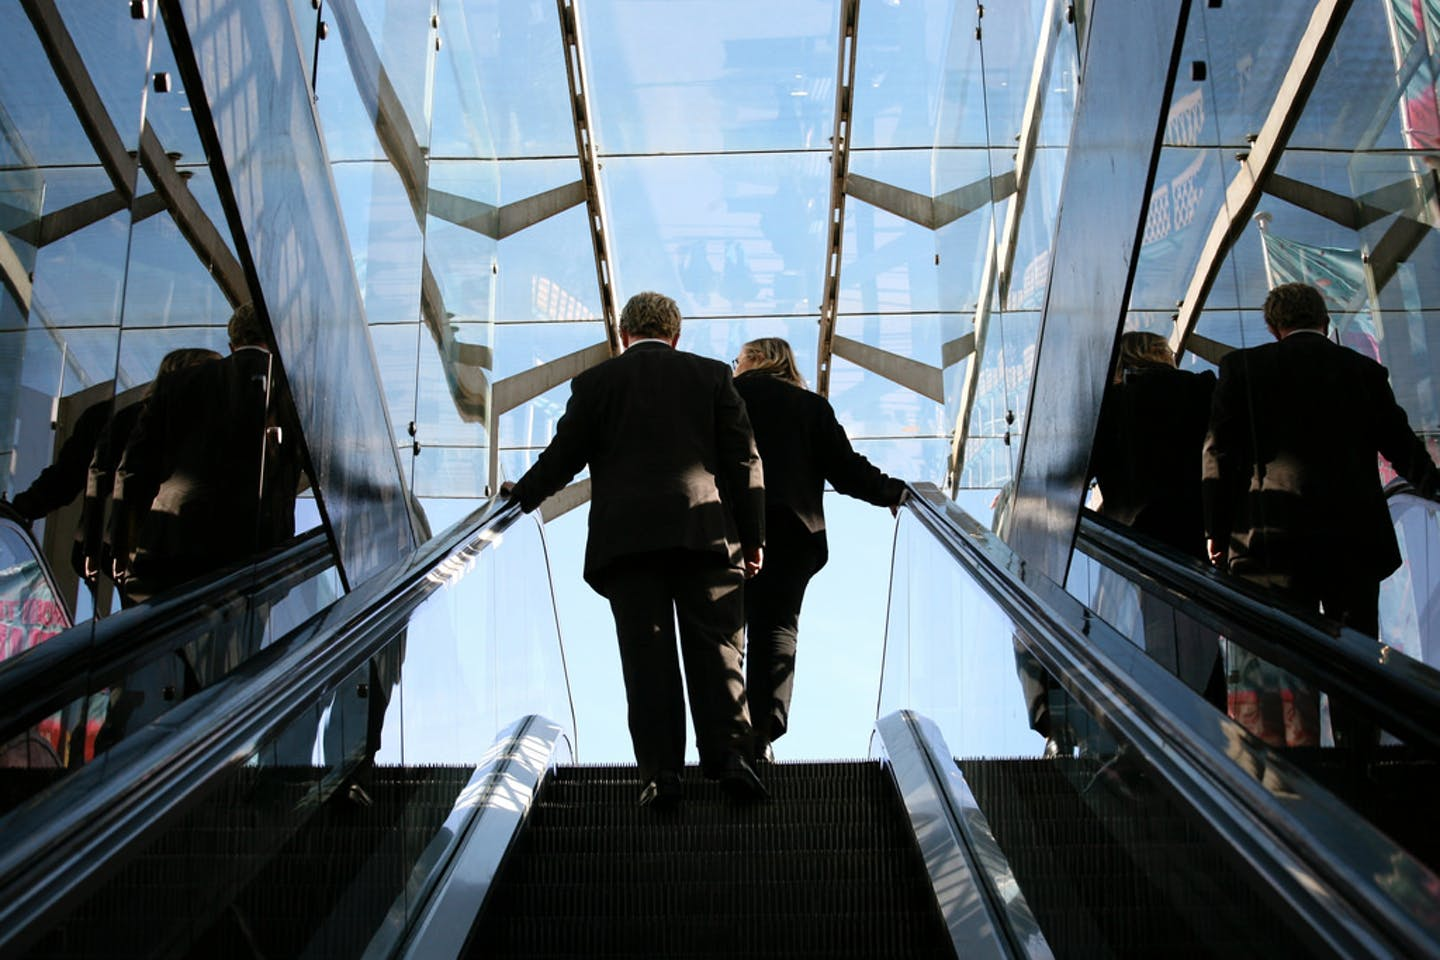 Business man and business woman on an escalator against blue sky